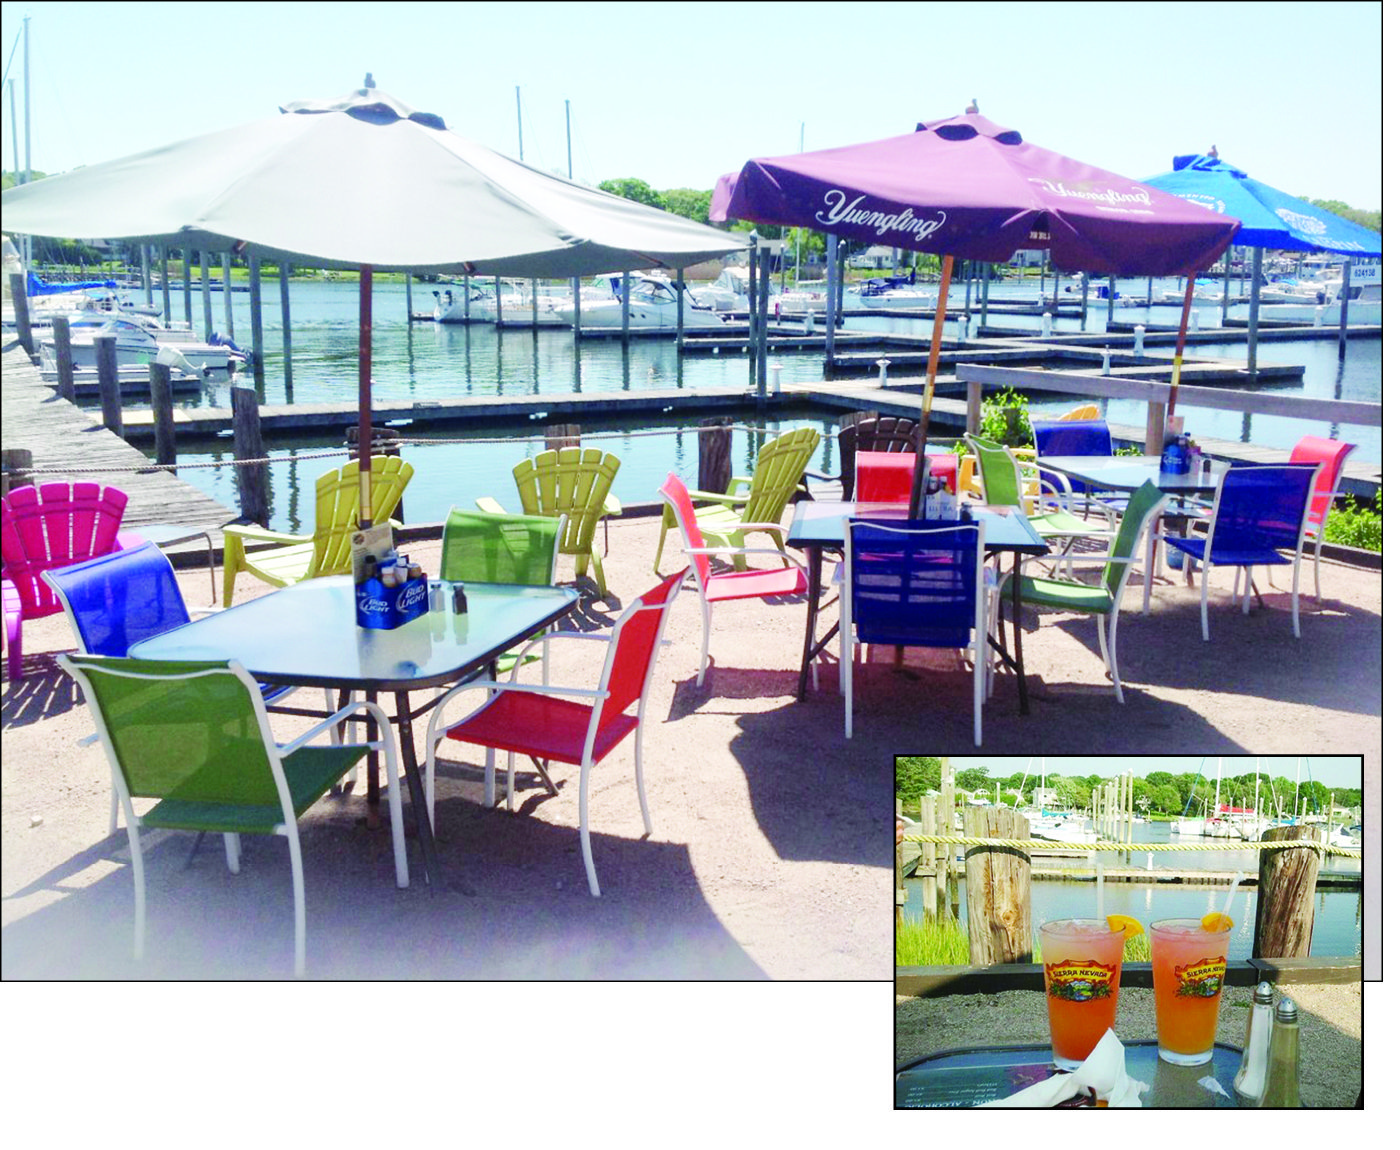 Bask in the sunshine, take in the view and satisfy your appetite with friends and neighbors at this casual pub overlooking Warwick Cove ~ County Cork Irish Pub. Summer hours mean more time to linger on the sun-bathed terrace or pull a stool up to the bar to watch the Red Sox!